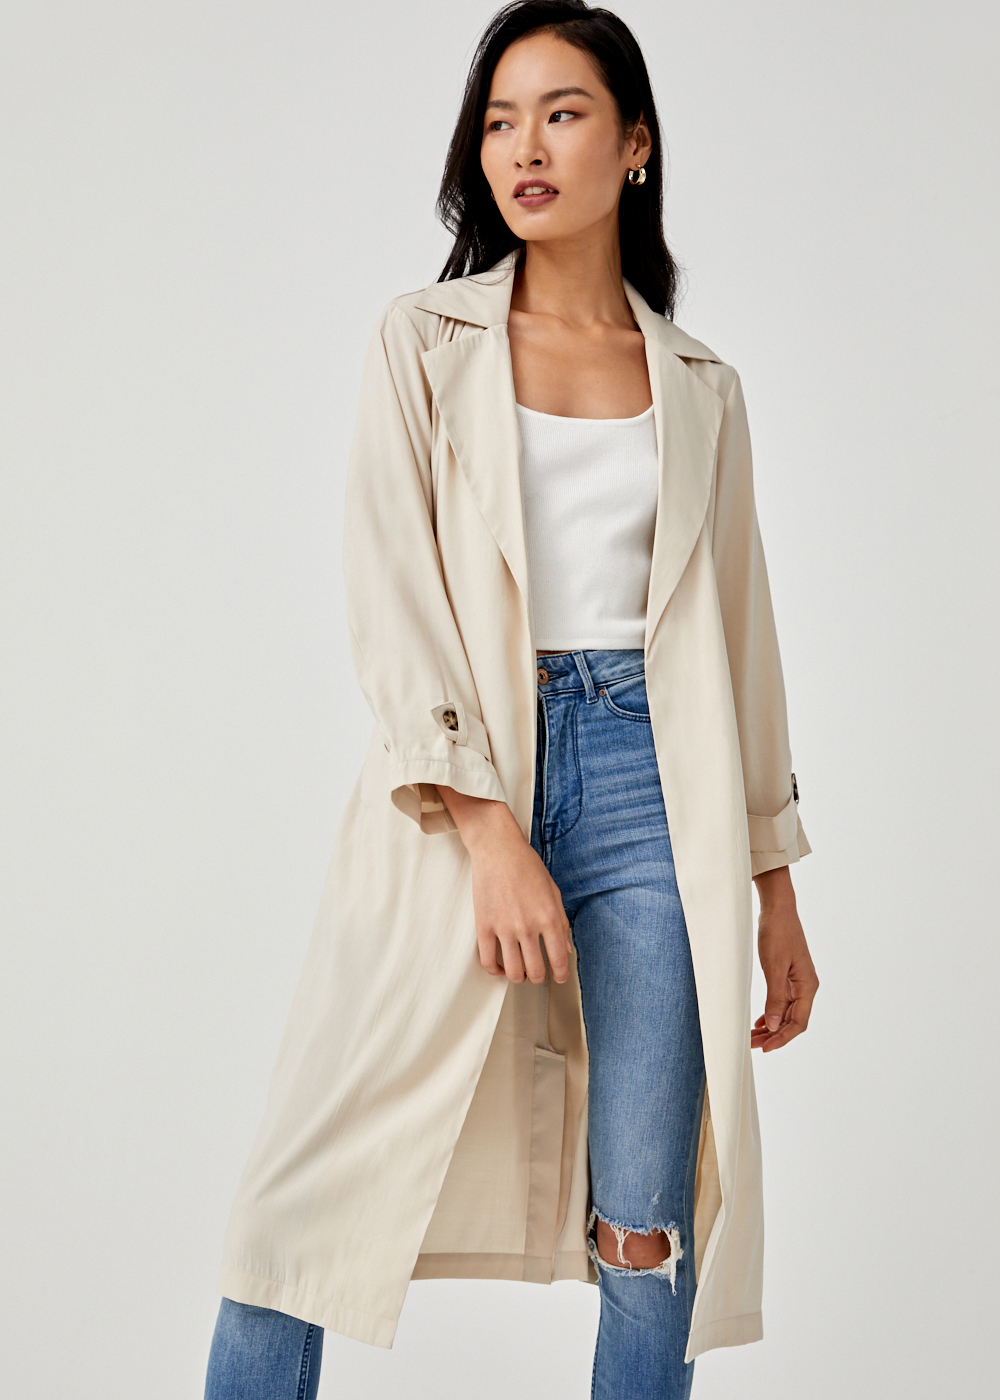 Juliana Midi Trench Coat